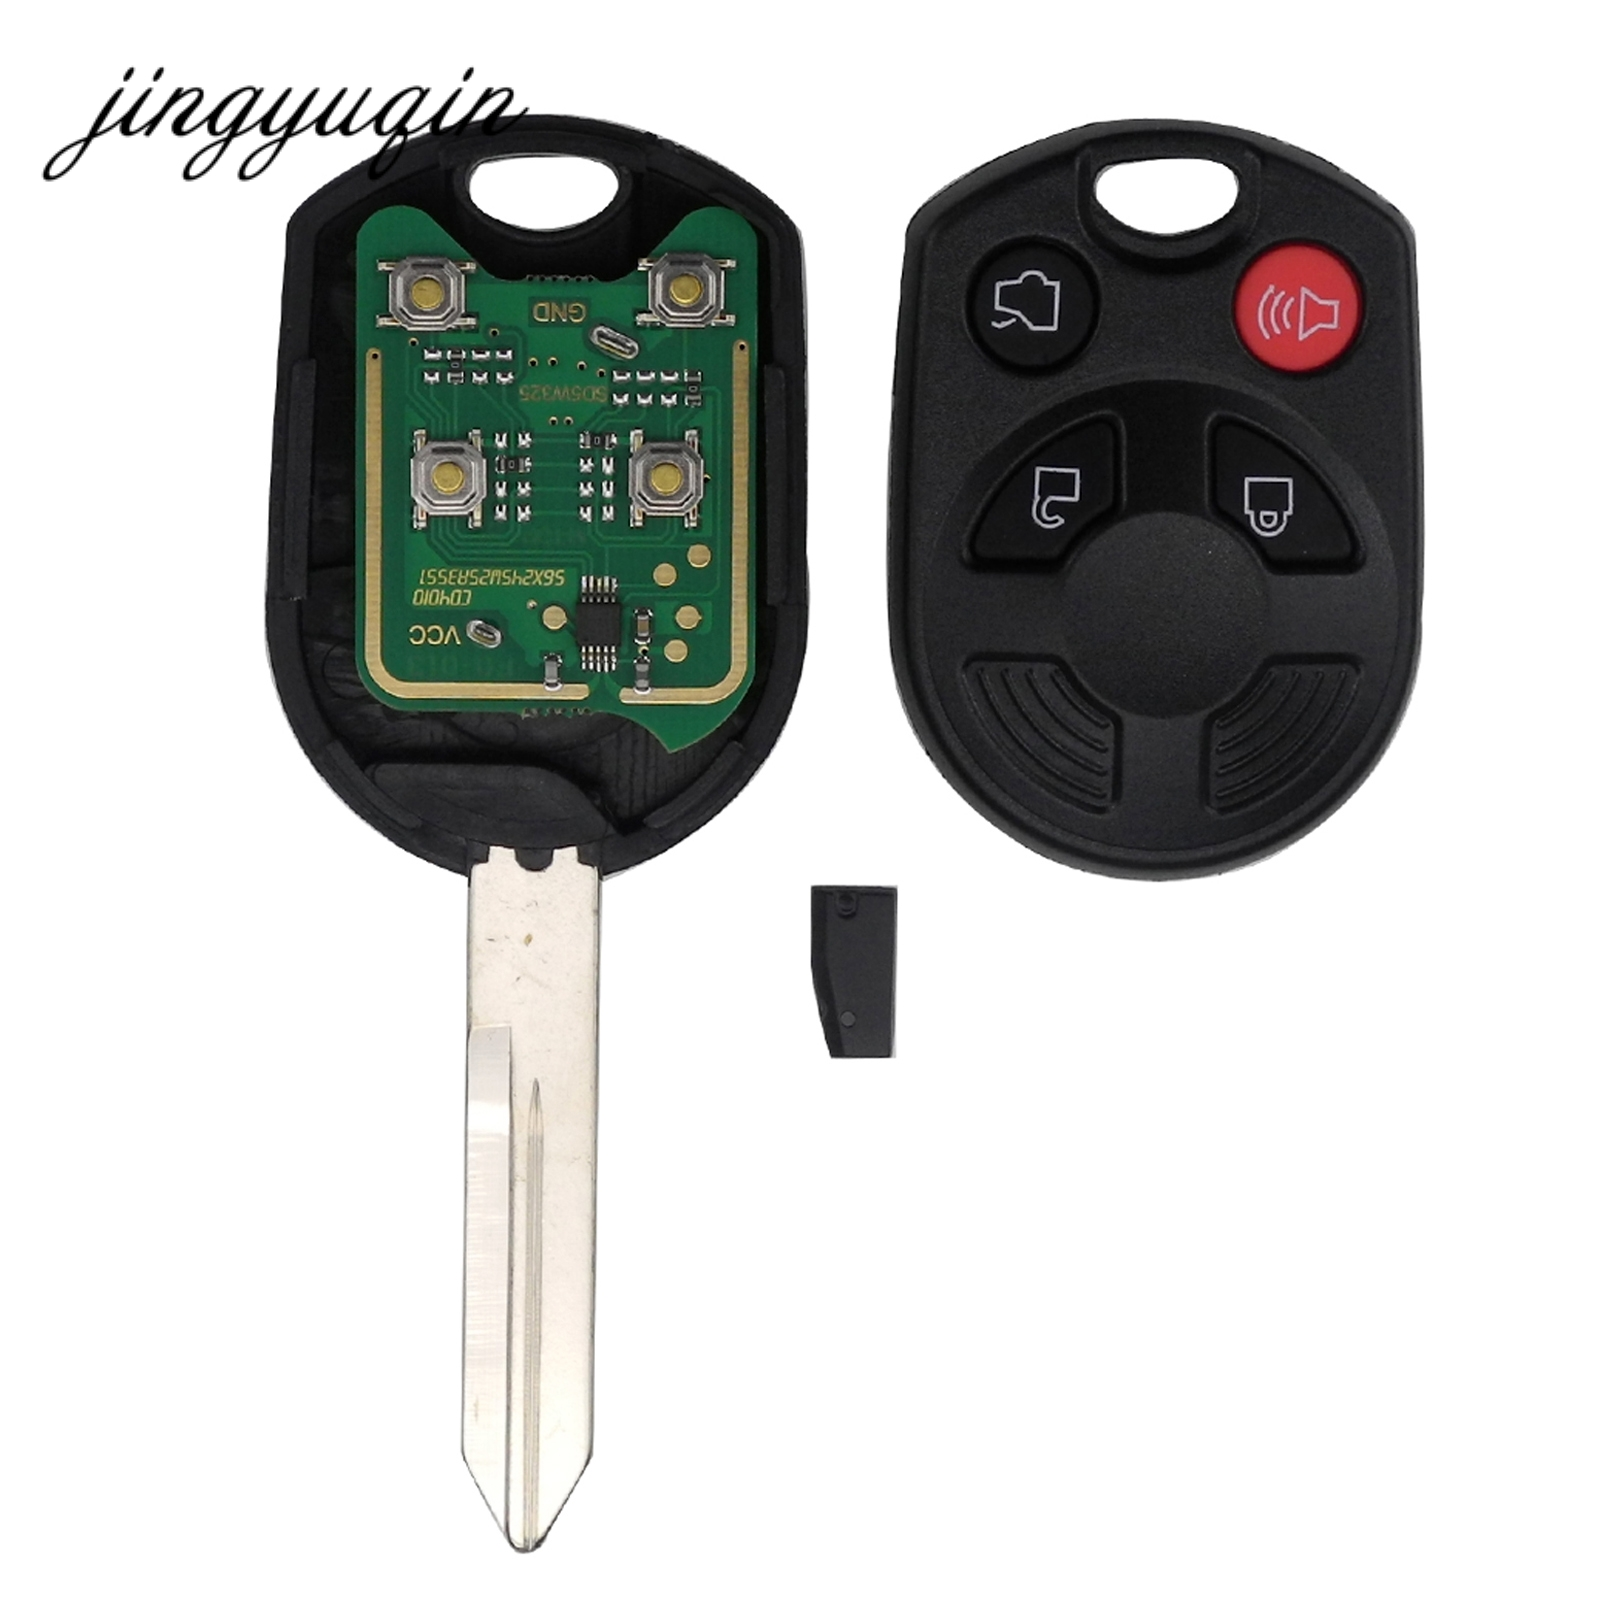 jingyuqin 4 Button Remote Car Key Fob Transmitter + 63 Chip For Ford Edge Escape Focus Lincoln Mazda Mercury OUCD6000022